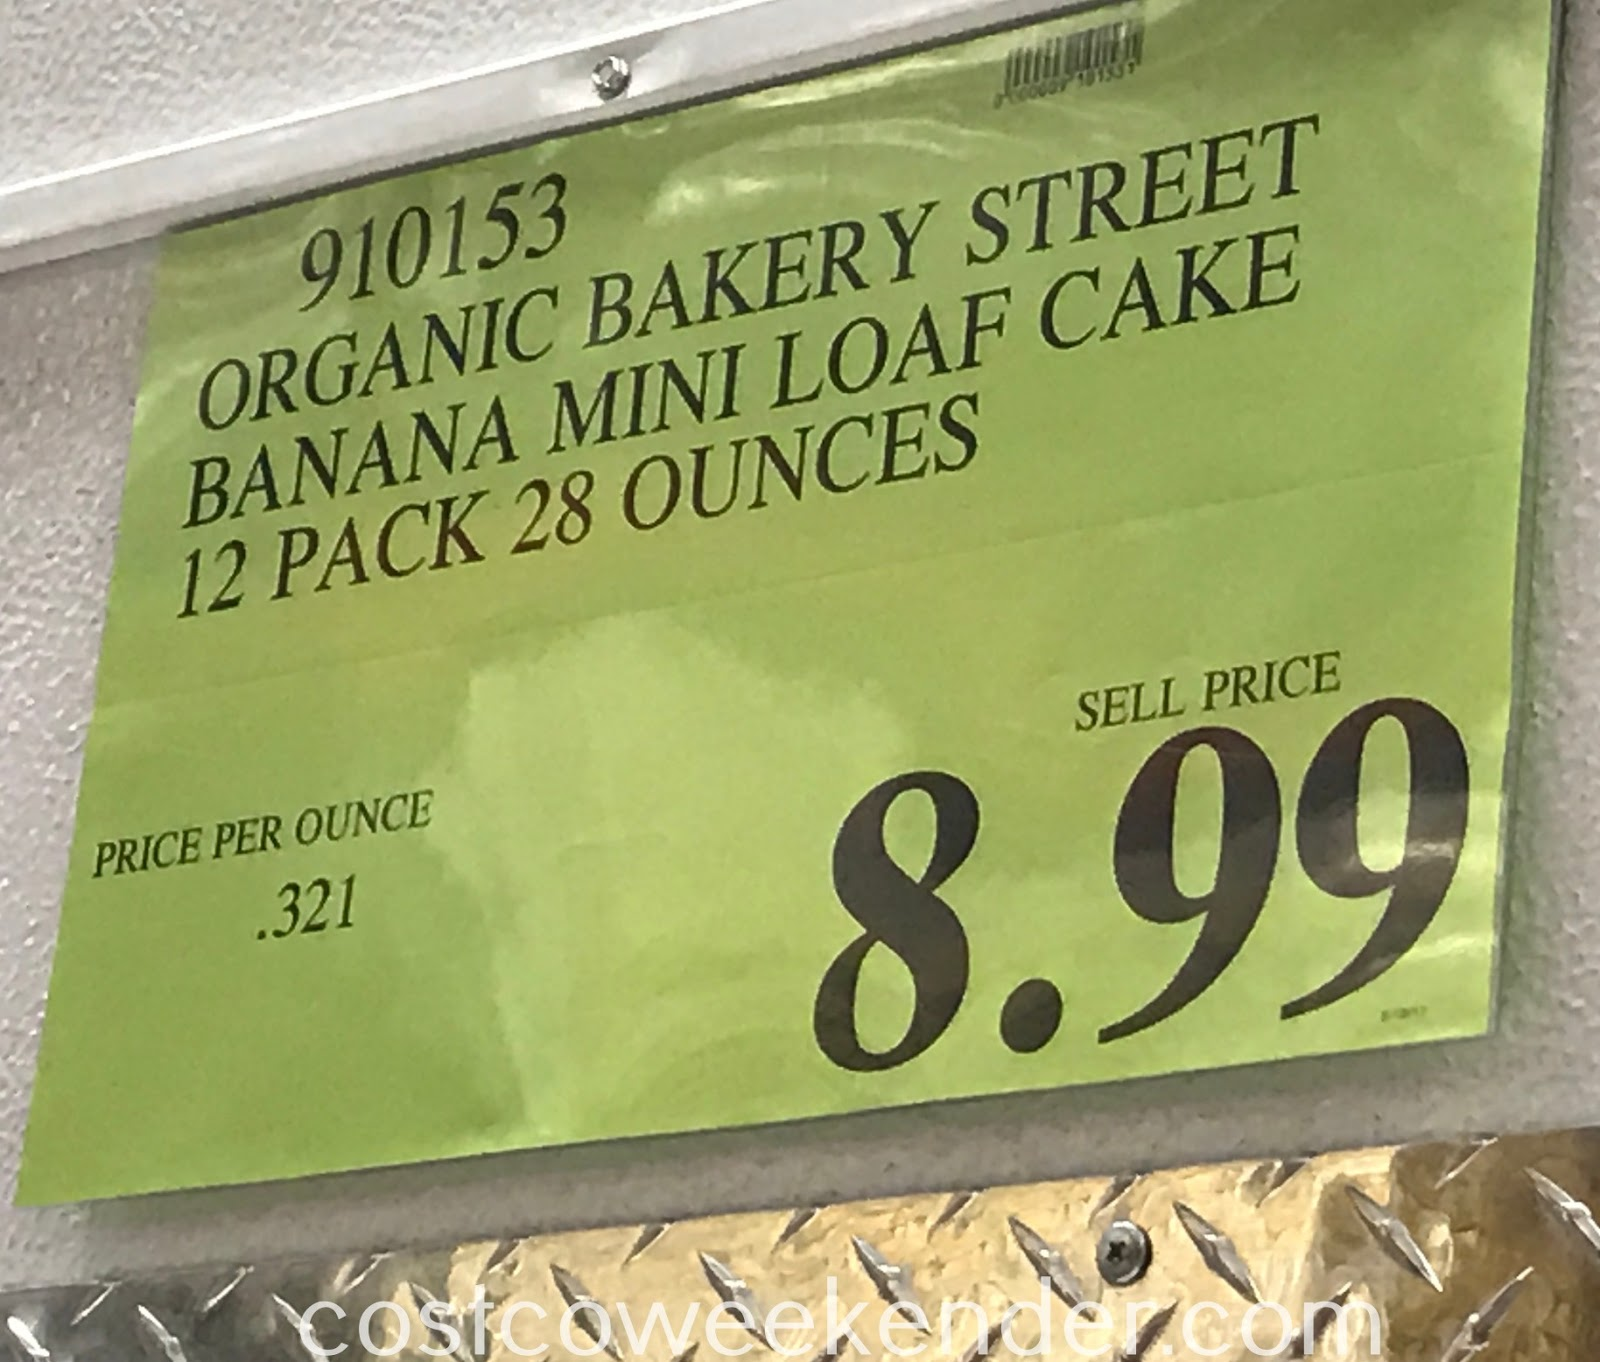 Deal for a 12 pack of Bakery Street Organic Banana Mini-Loaf Cakes at Costco